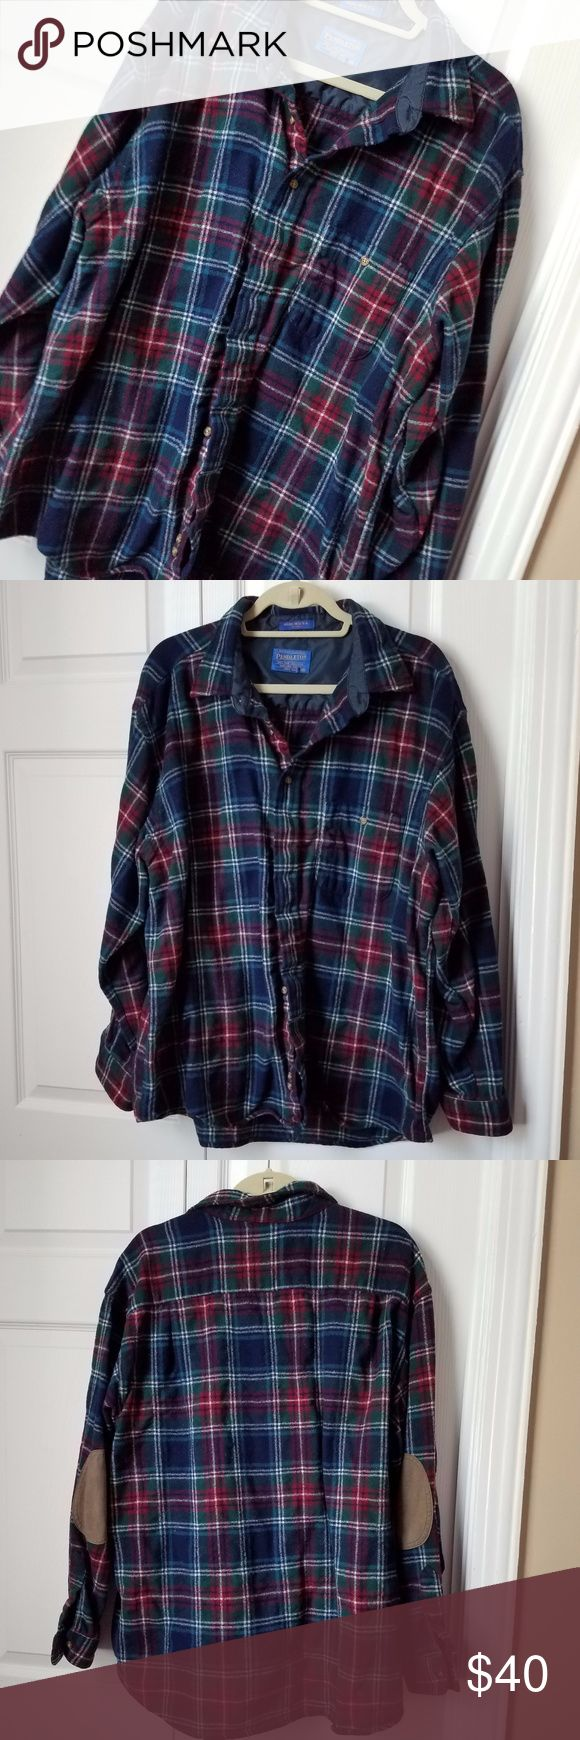 Pendleton Men's 100% Wool Shirt Pendleton heavy button down shirt made in Portland, Oregon. Has elbow patches & 1 front pocket at chest with button closure Shell: 100% pure virgin wool Lining: 100% nylon Trim: 60% nylon, 40% spandex navy blue, green, red & white plaid Pendleton tag is slightly ripped Normal wash wear Measurements in photos Pendleton Shirts Casual Button Down Shirts